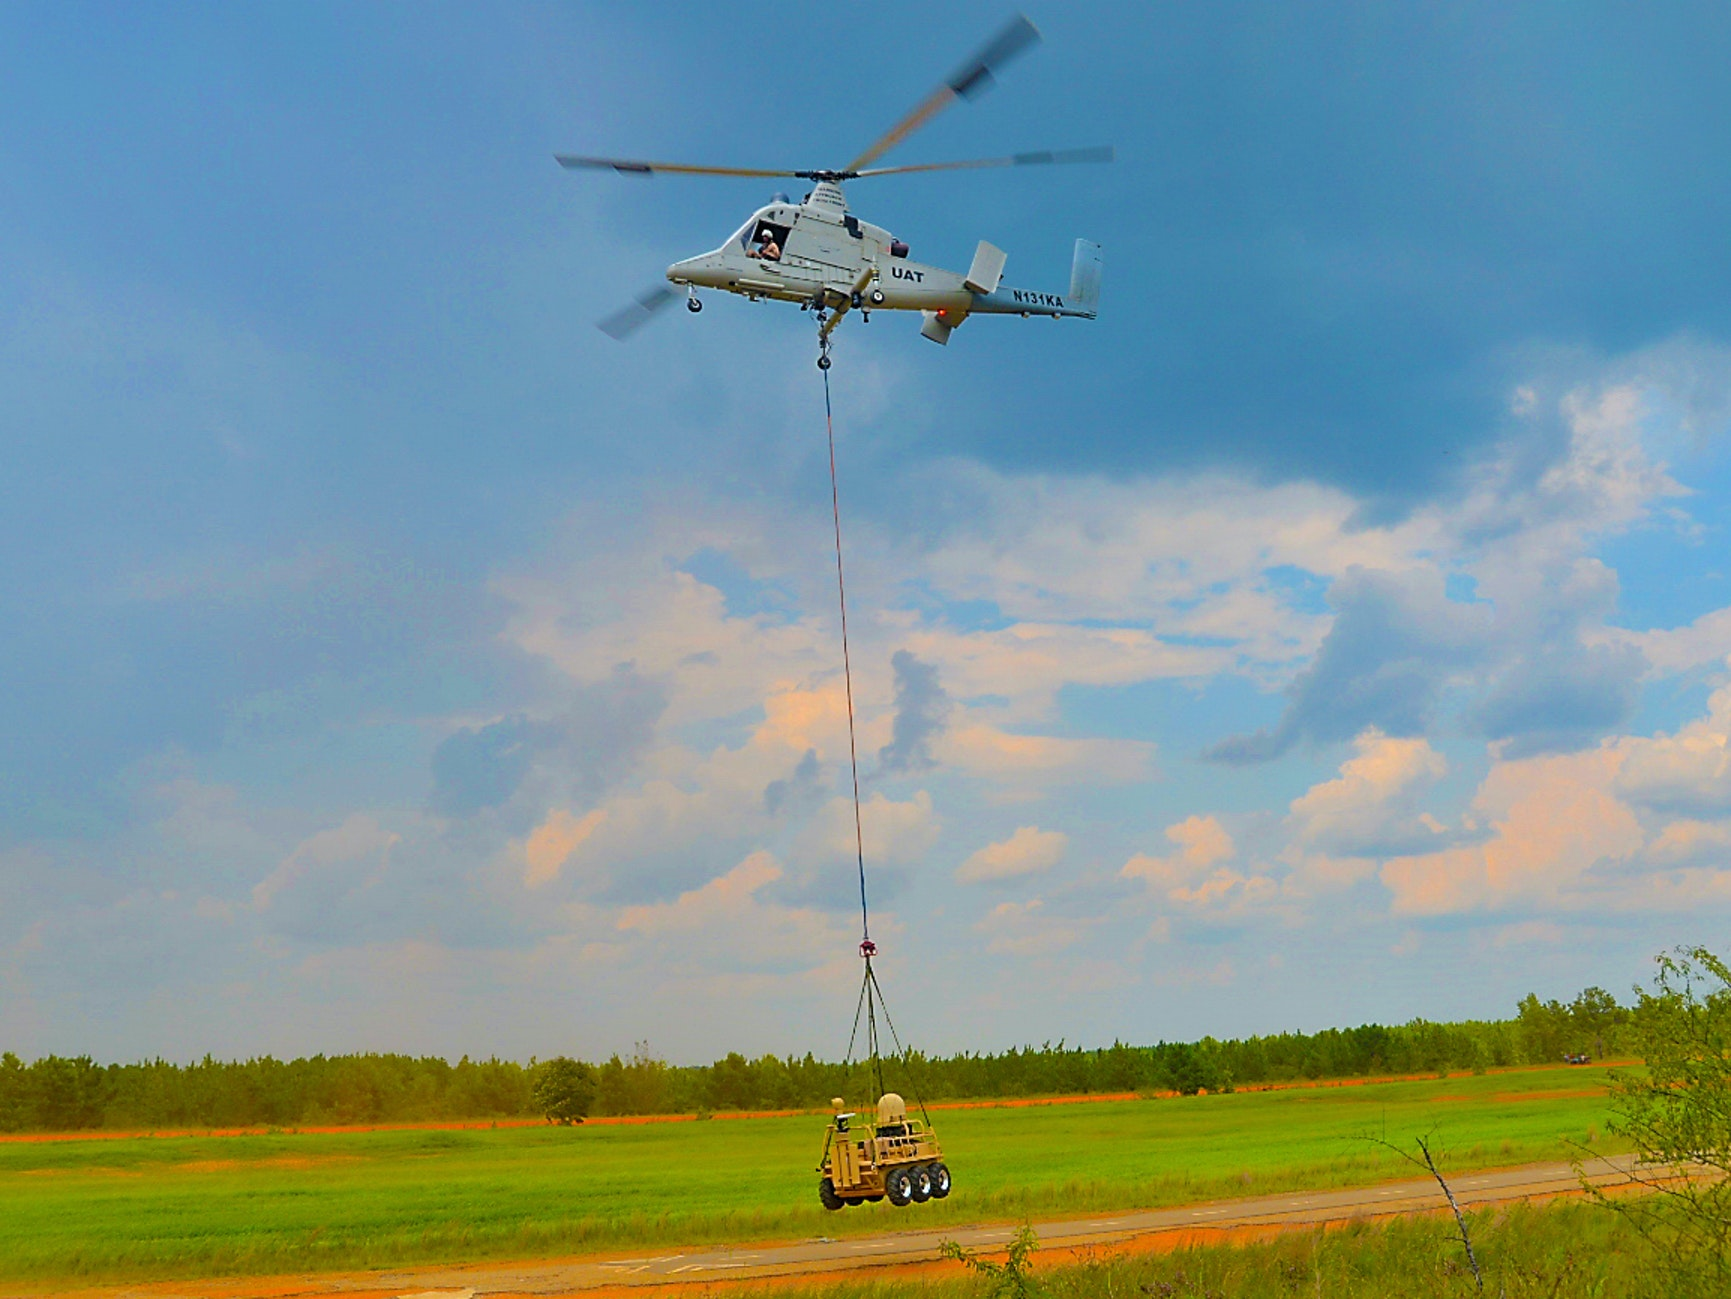 """A """"Dismounted Soldier Autonomy Tools,"""" or DSAT, being lowered by a helicopter."""